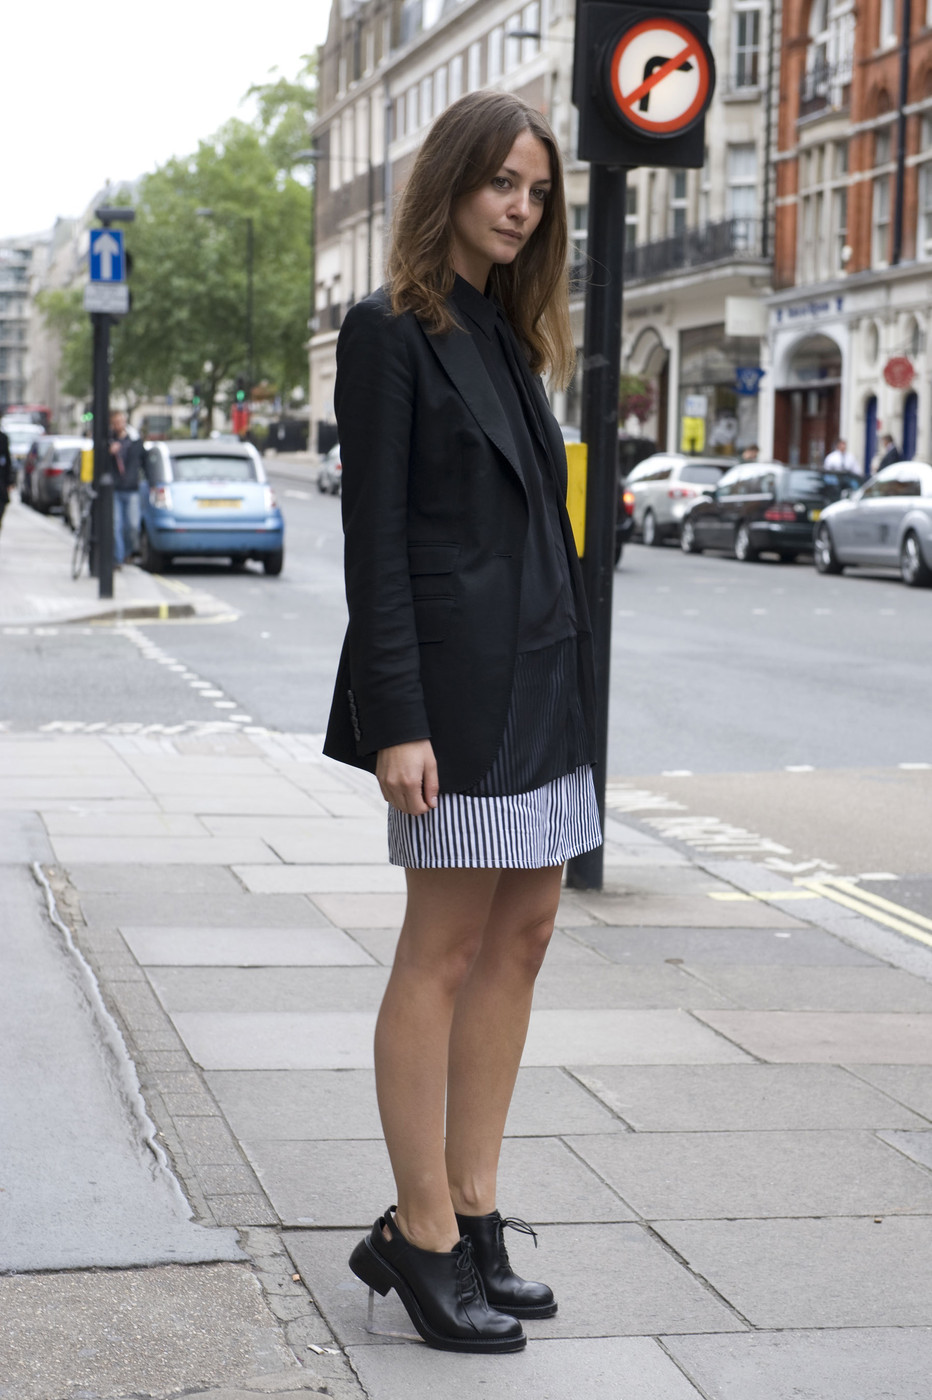 London Fashion Week Spring 2013 Attendees Pictures Livingly